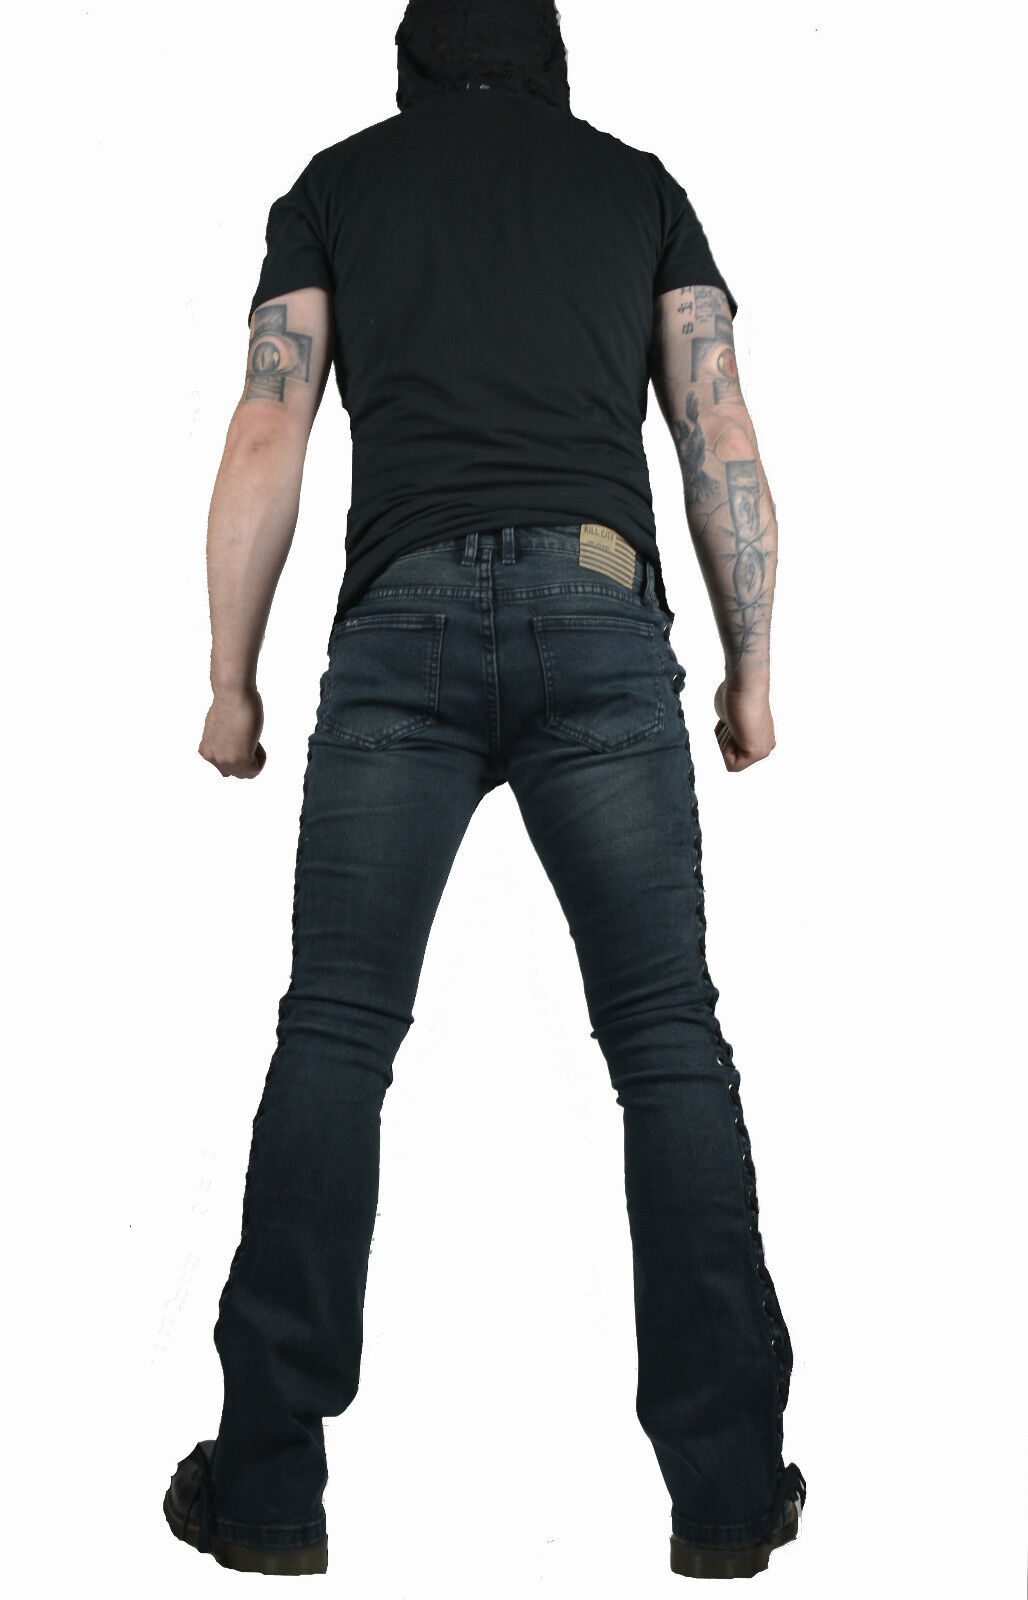 KILL CITY LACE UP ROCKER FIT RIFF BOOT CUT GOTHIC PUNK STAGE JEANS PANTS BIKER Clothing, Shoes & Accessories